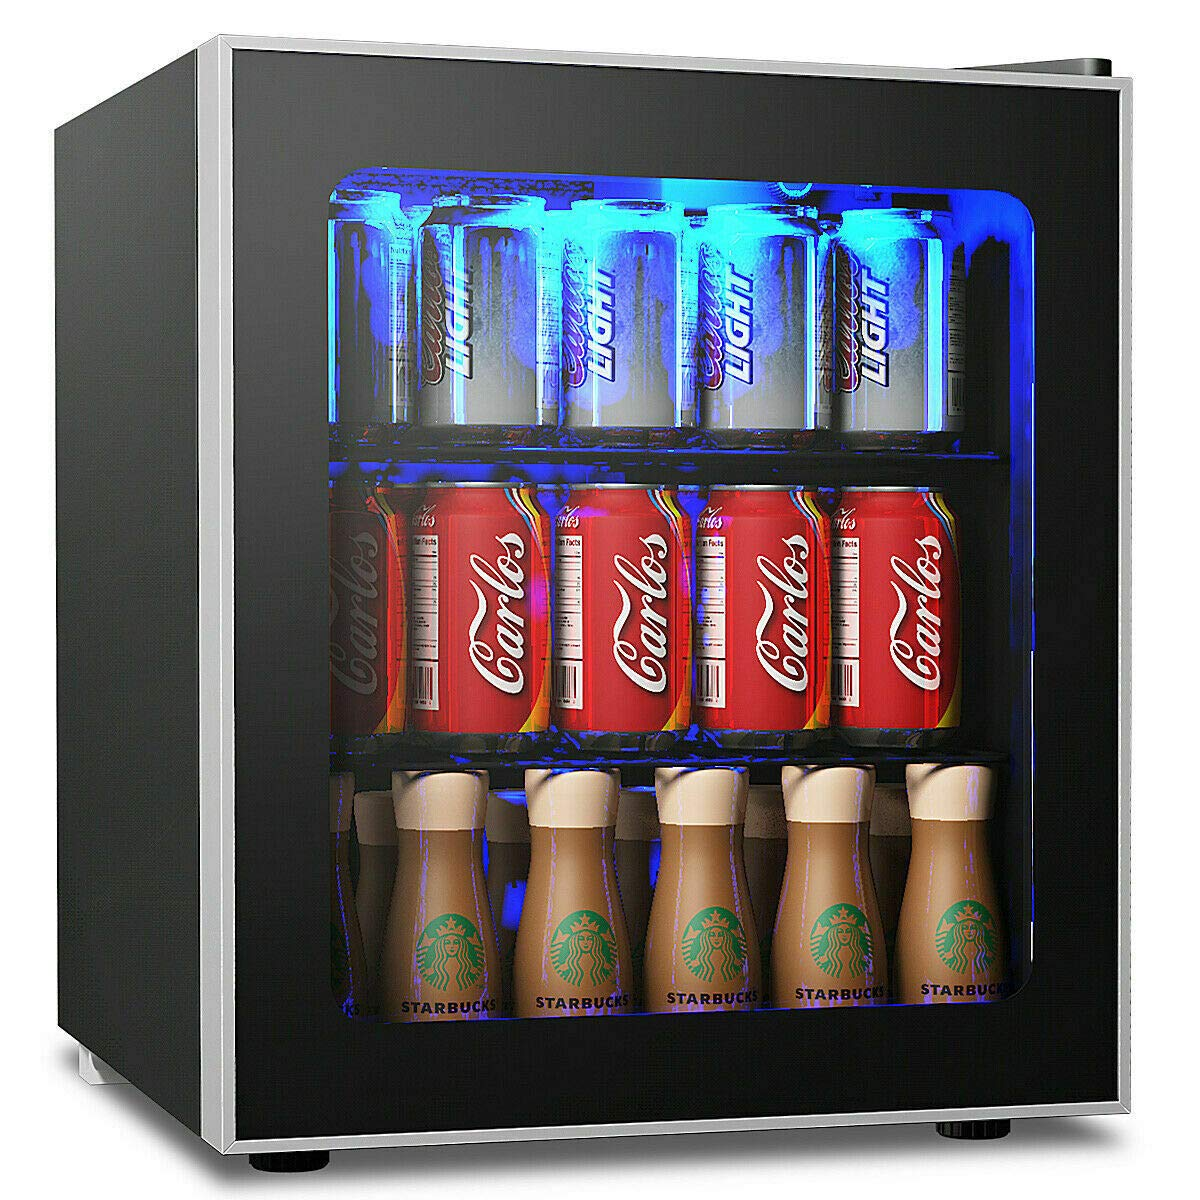 Costway Beverage Refrigerator And Cooler, 60 Can Mini Fridge, Adjustable  Removable Shelves, Perfect For Soda Beer Or Wine Small Drink Dispenser